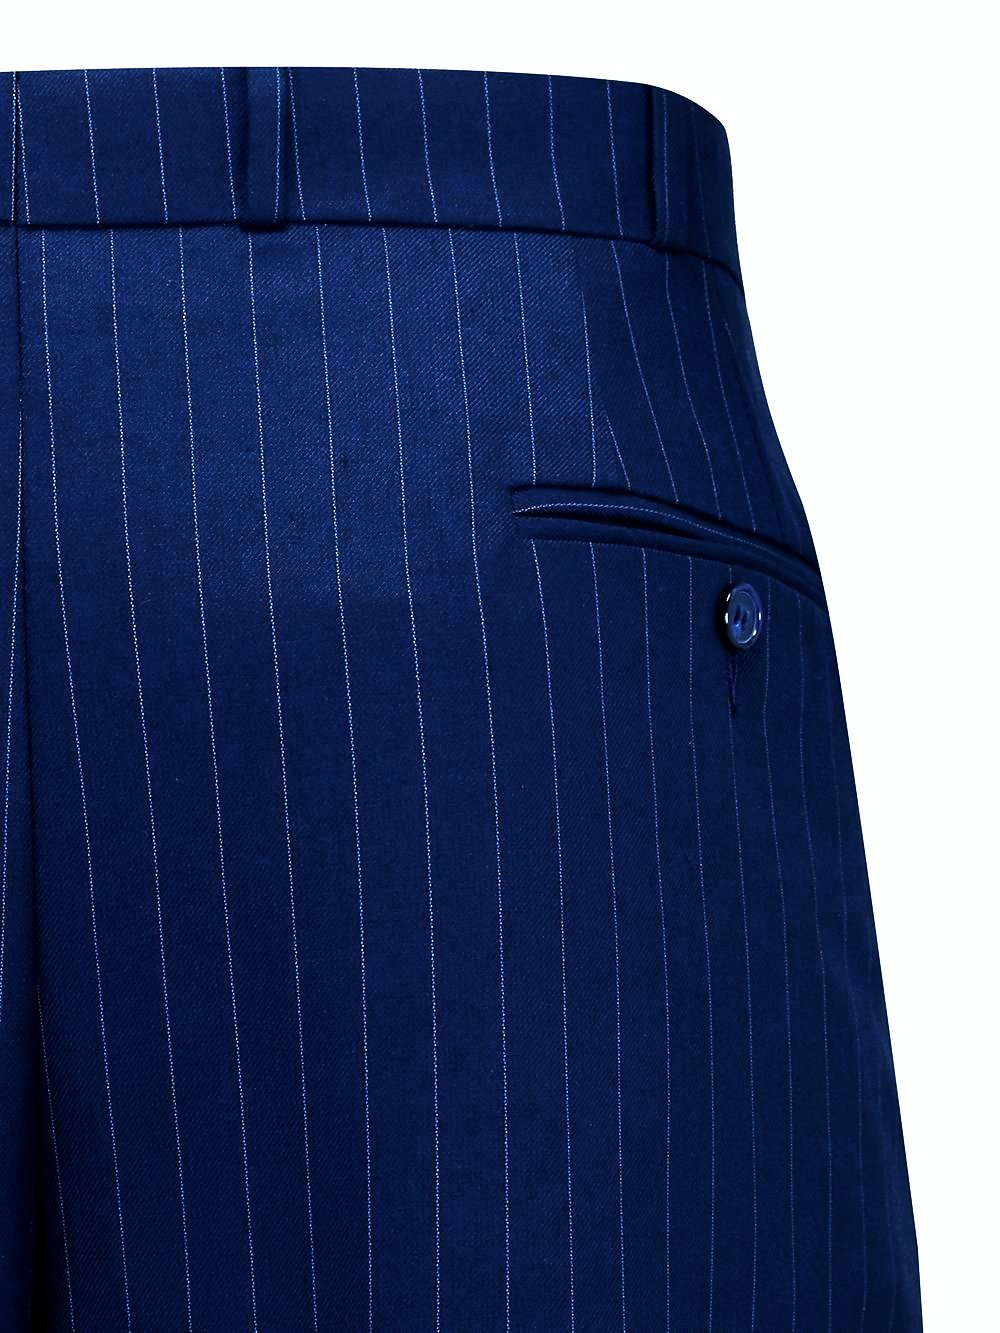 1930s Men's High Waisted Pants, Wide Leg Trousers Navy Blue with Pinstripe Oxford Bags Mens 1940s Inspired Trousers £89.00 AT vintagedancer.com